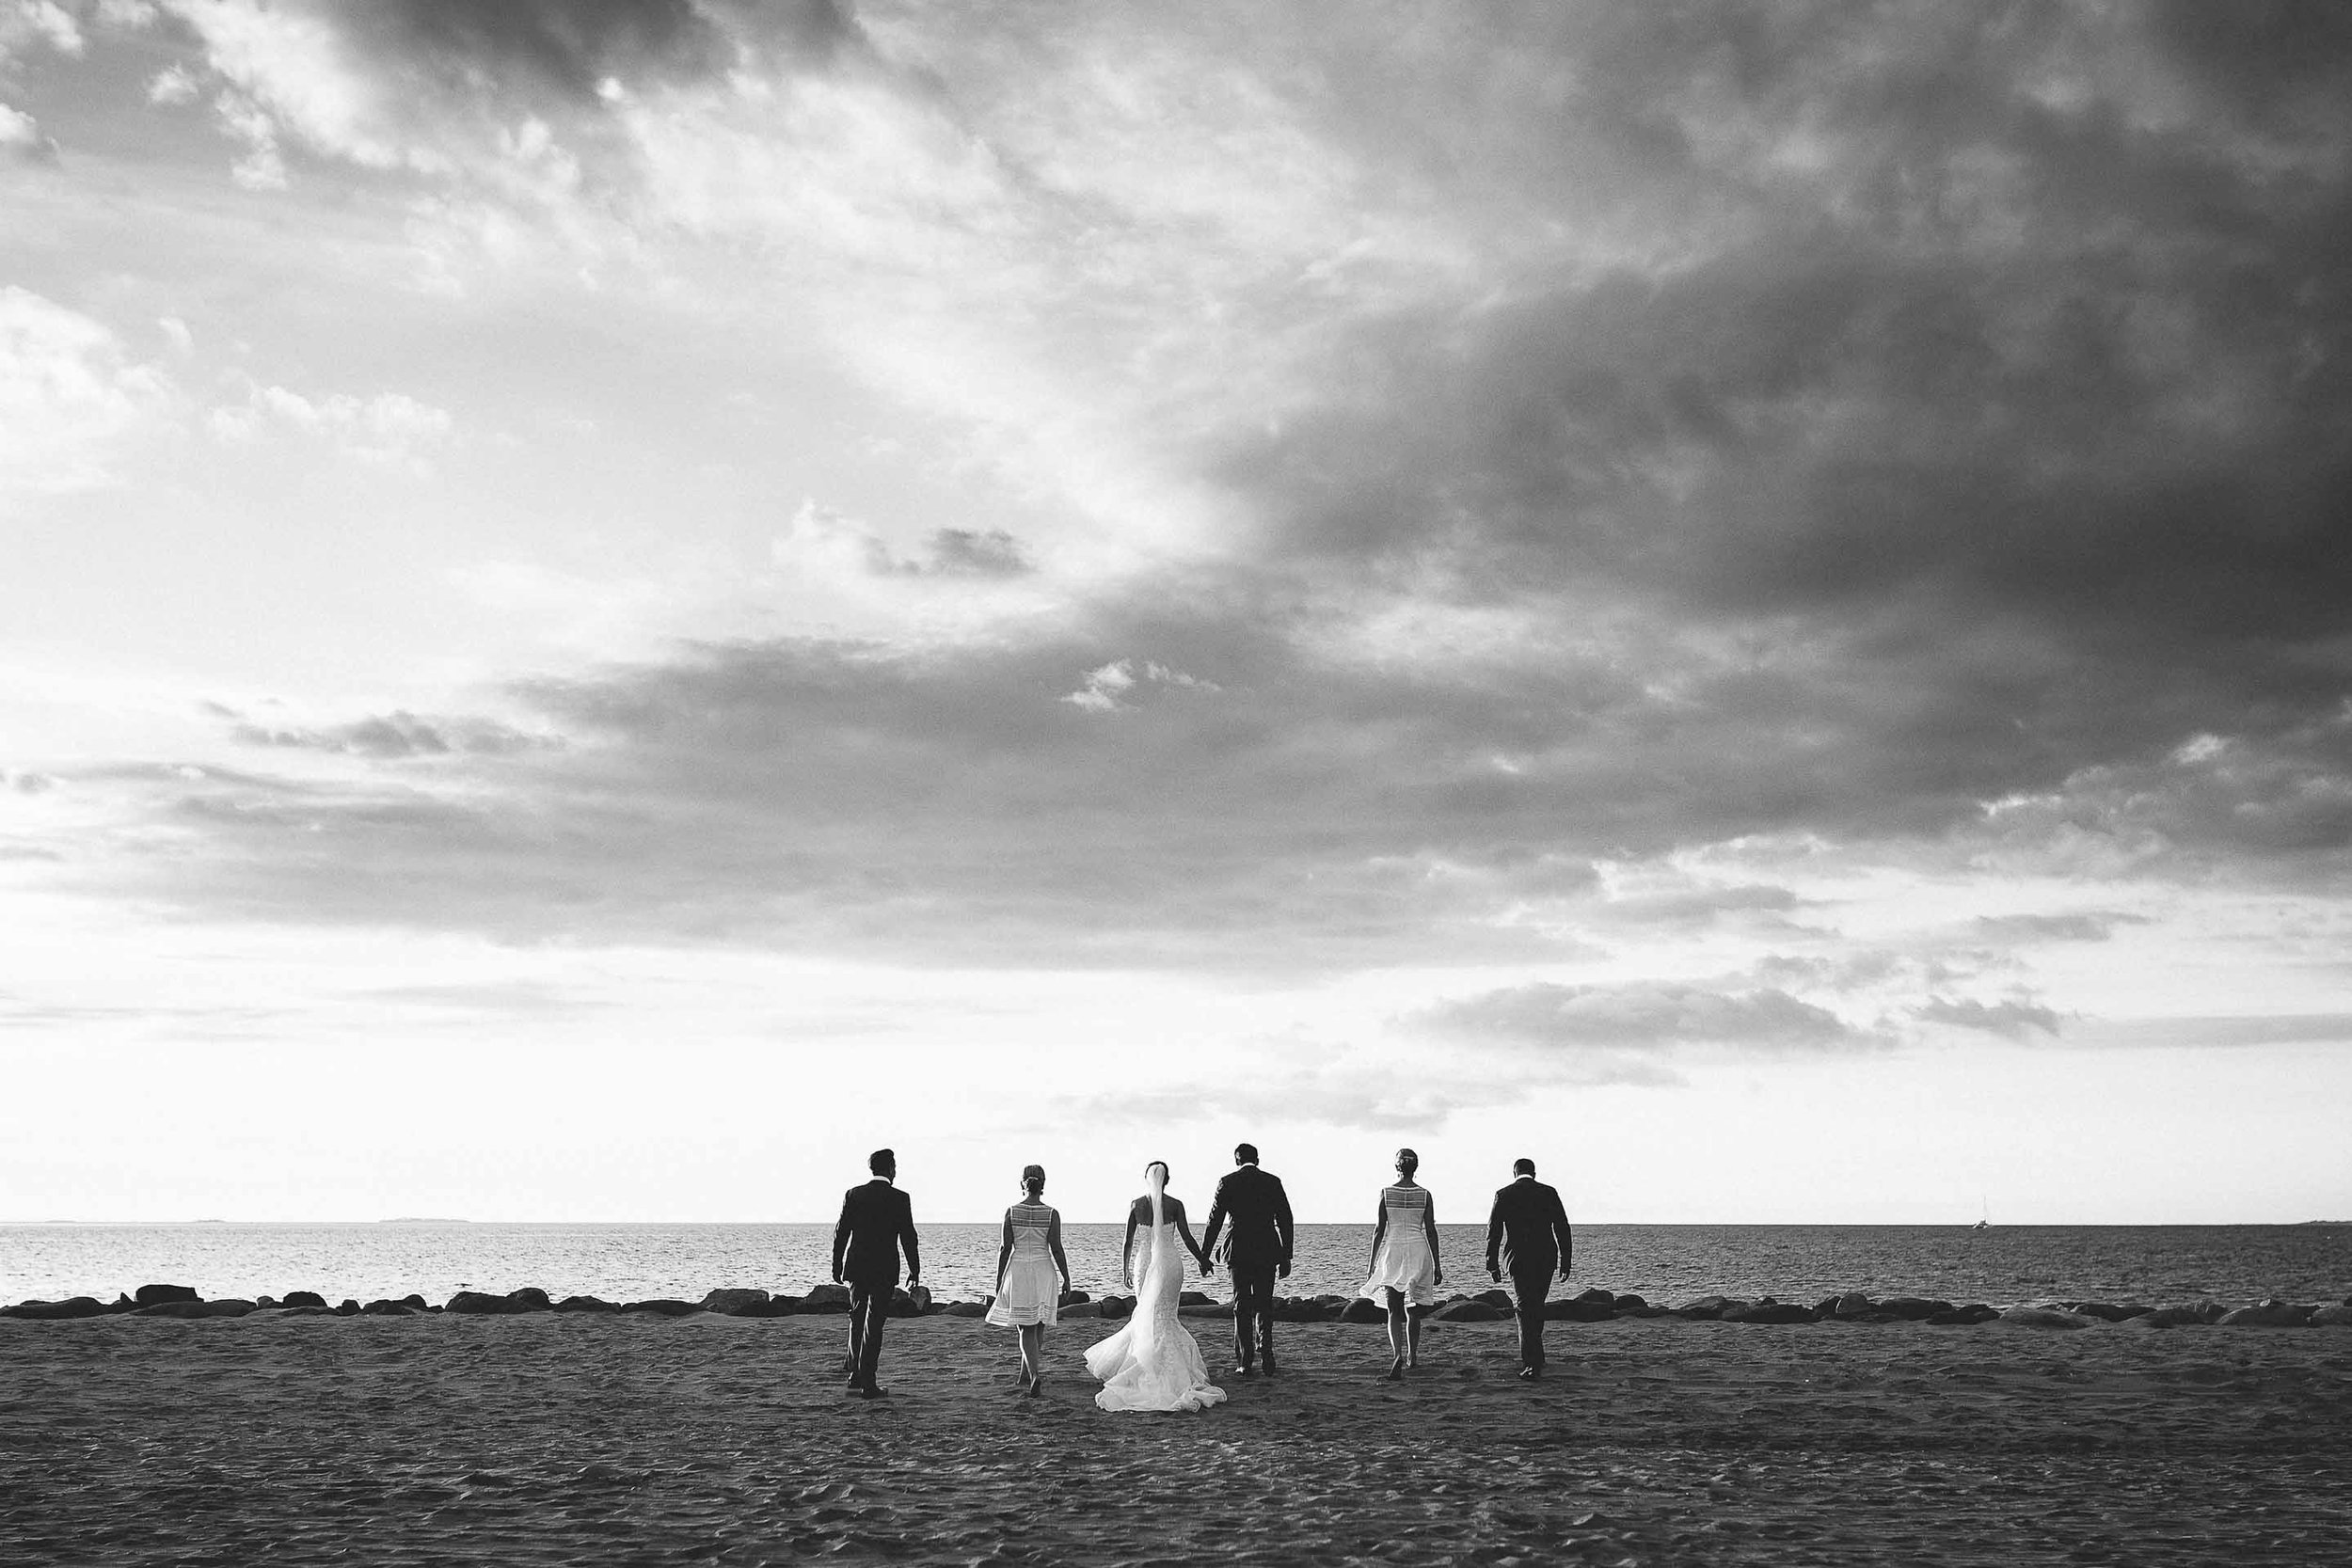 Black and white dramatic image of the bridal party walking towards the ocean on the beach.